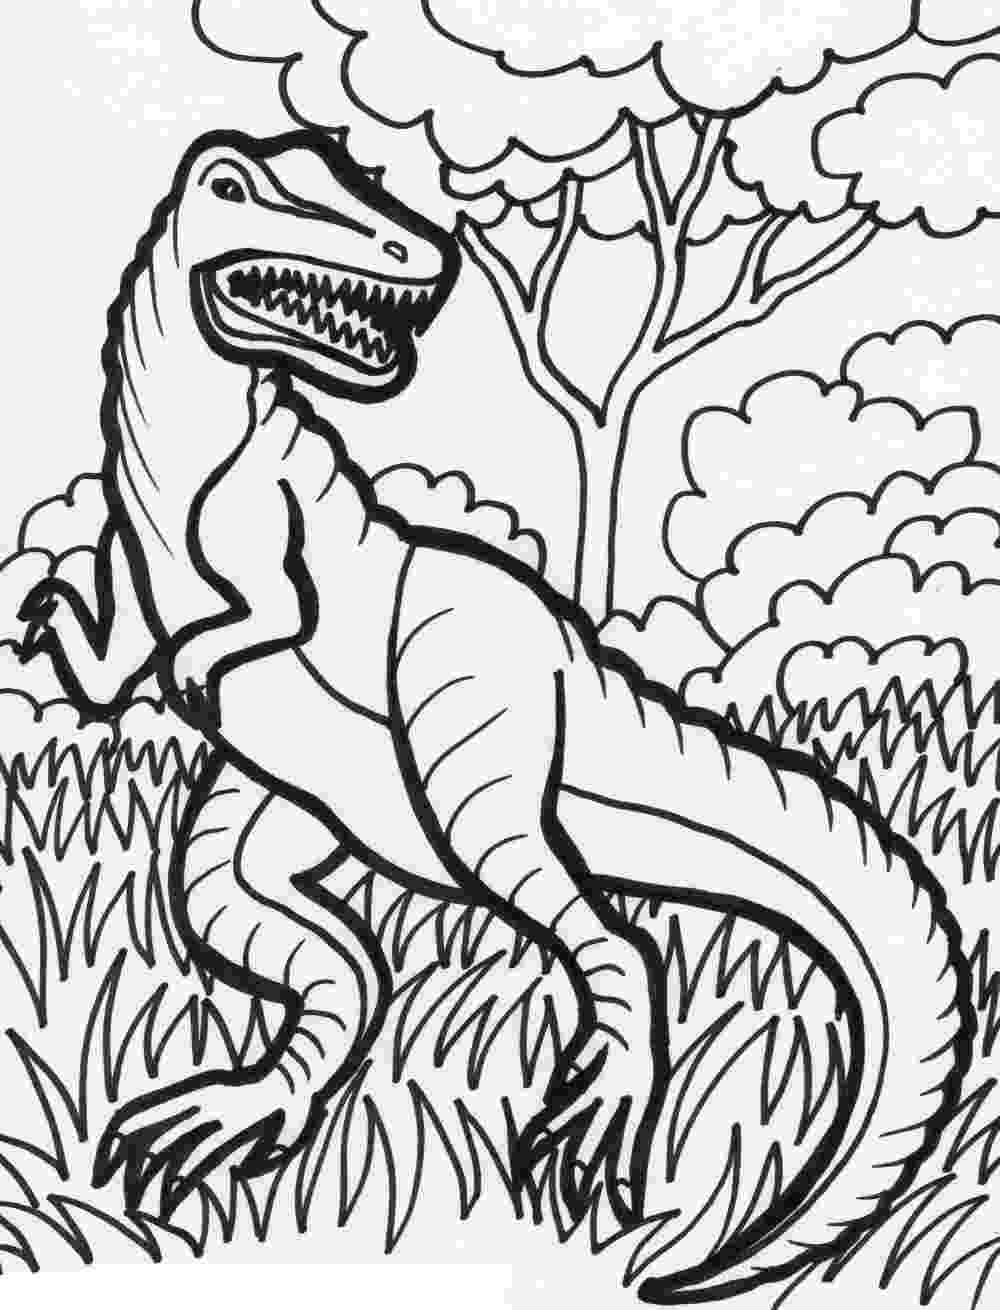 colouring pages dinosaurs printable free coloring pages dinosaur coloring pages colouring pages dinosaurs printable